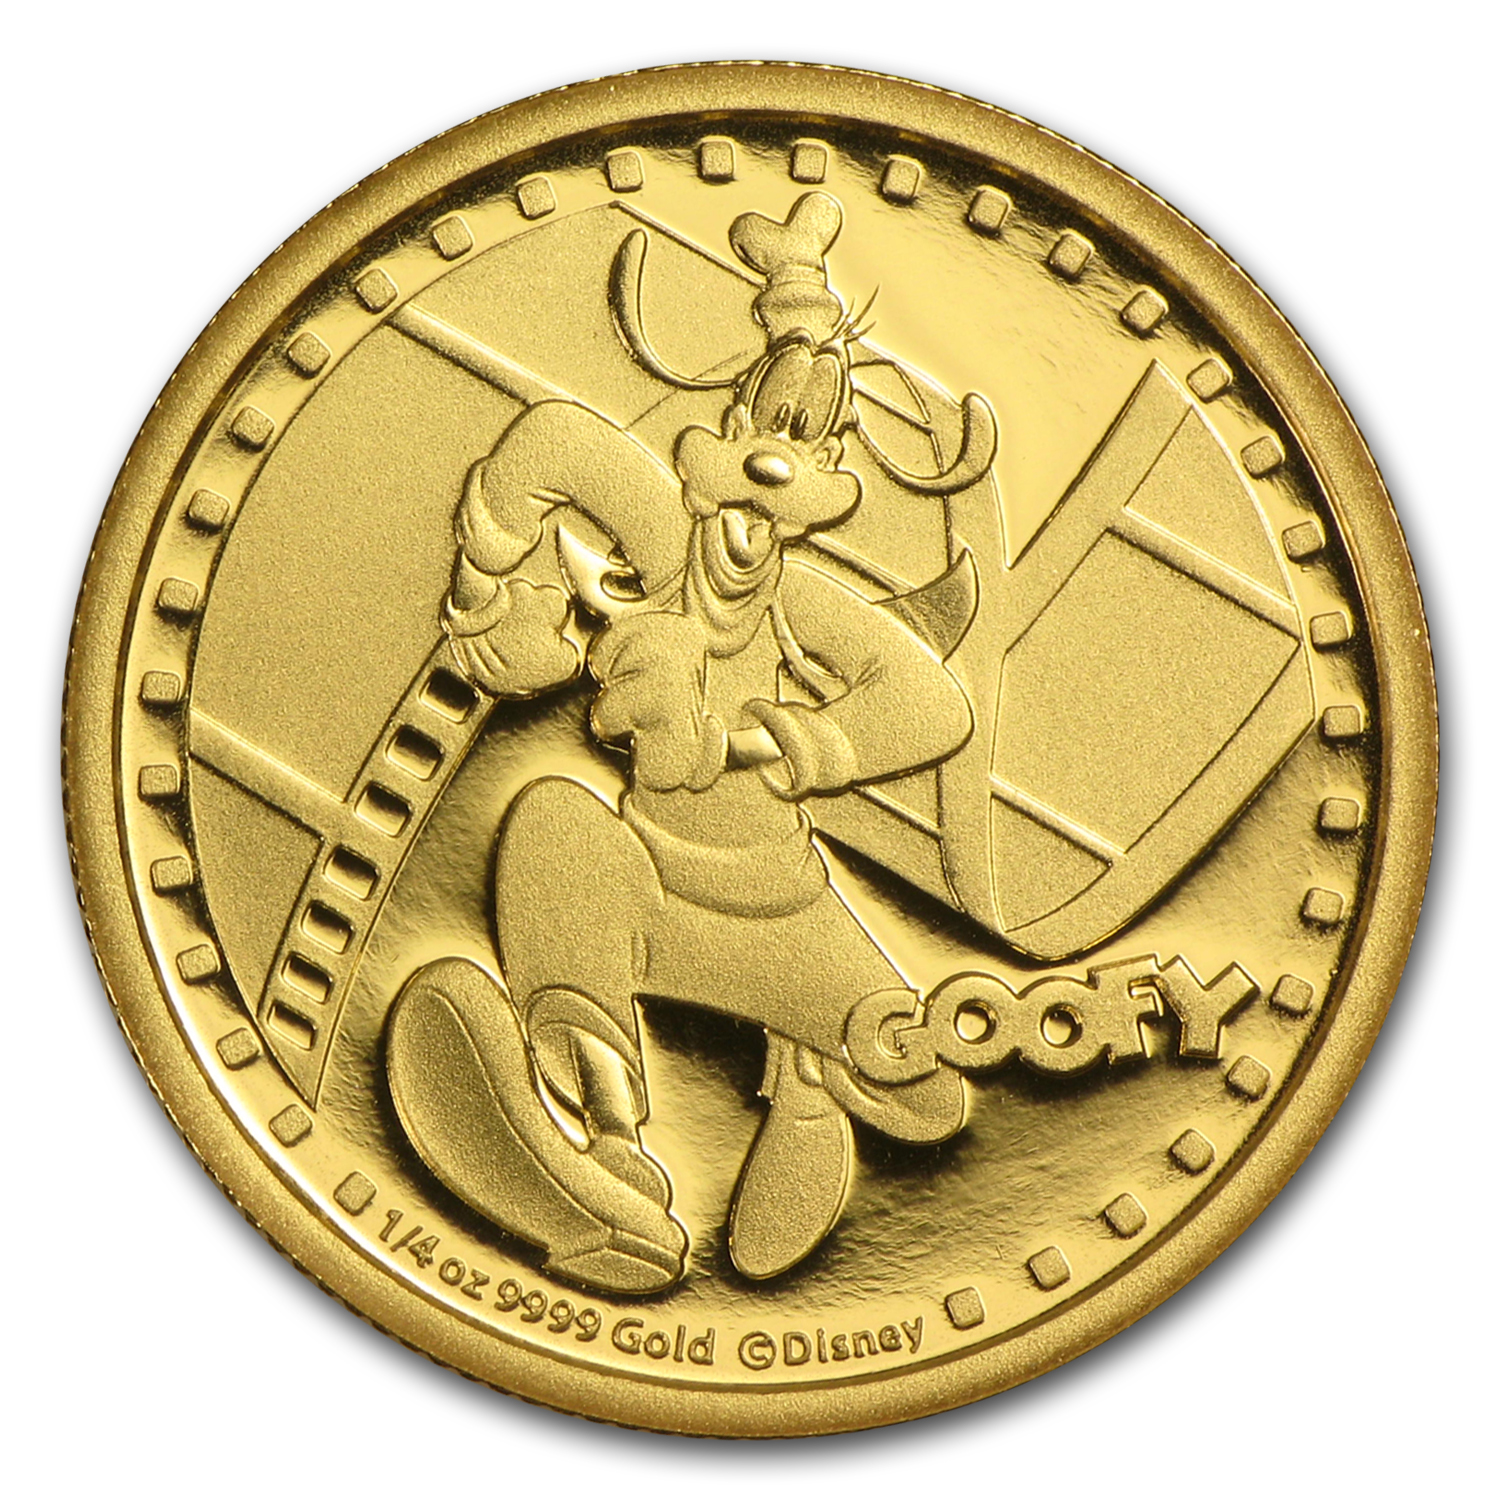 2014 1/4 oz Gold $25 Niue Disney Goofy